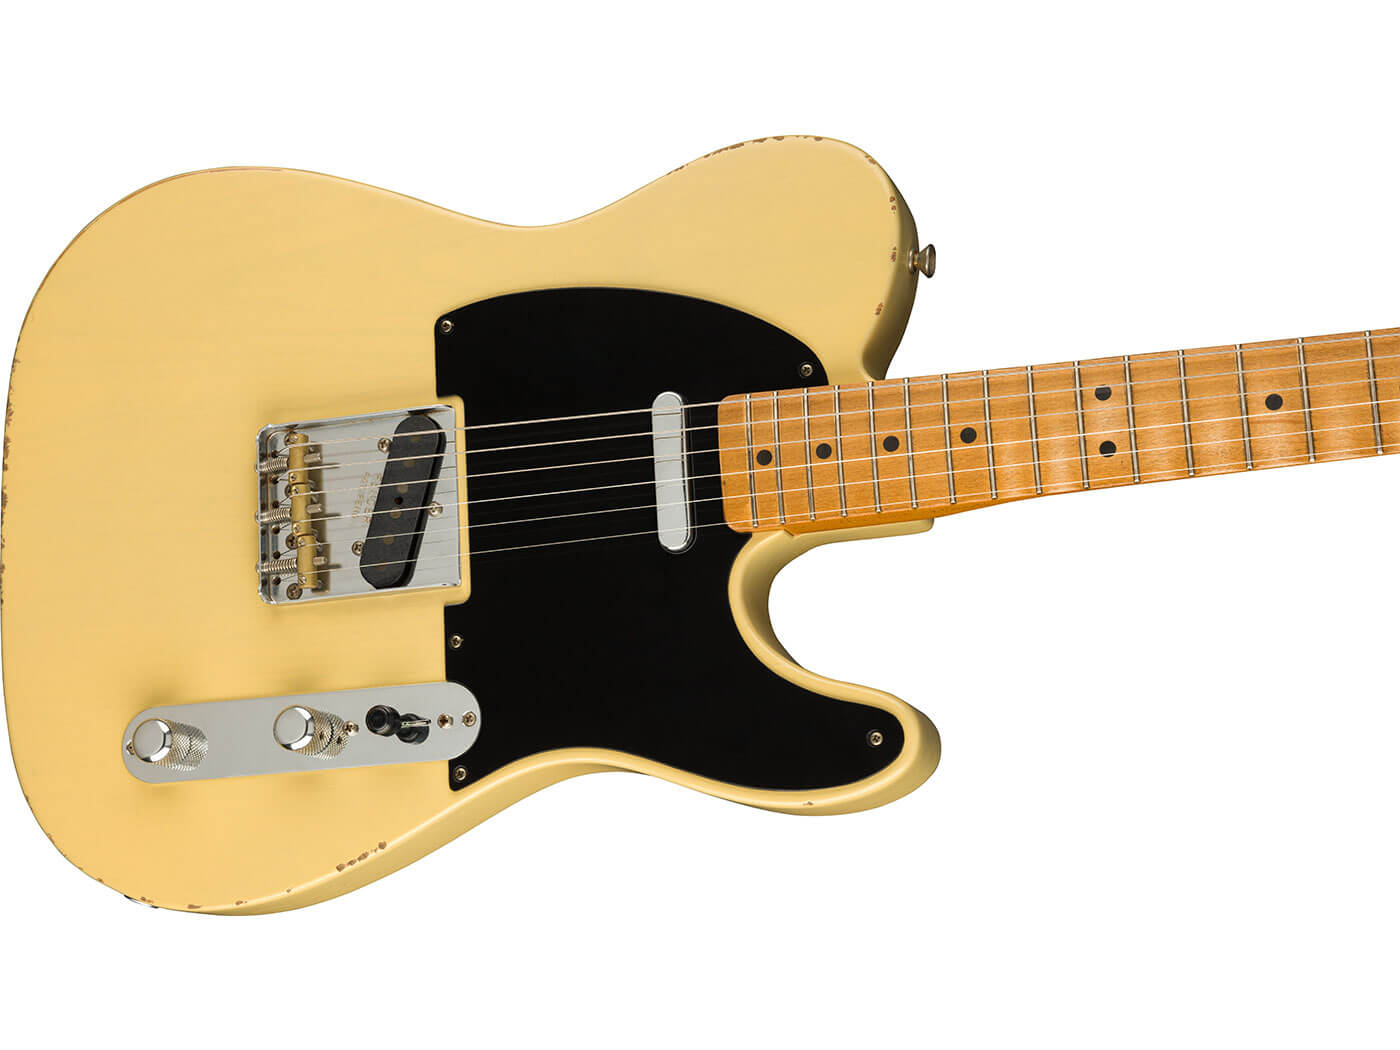 The '50s Telecaster in Vintage Blonde.